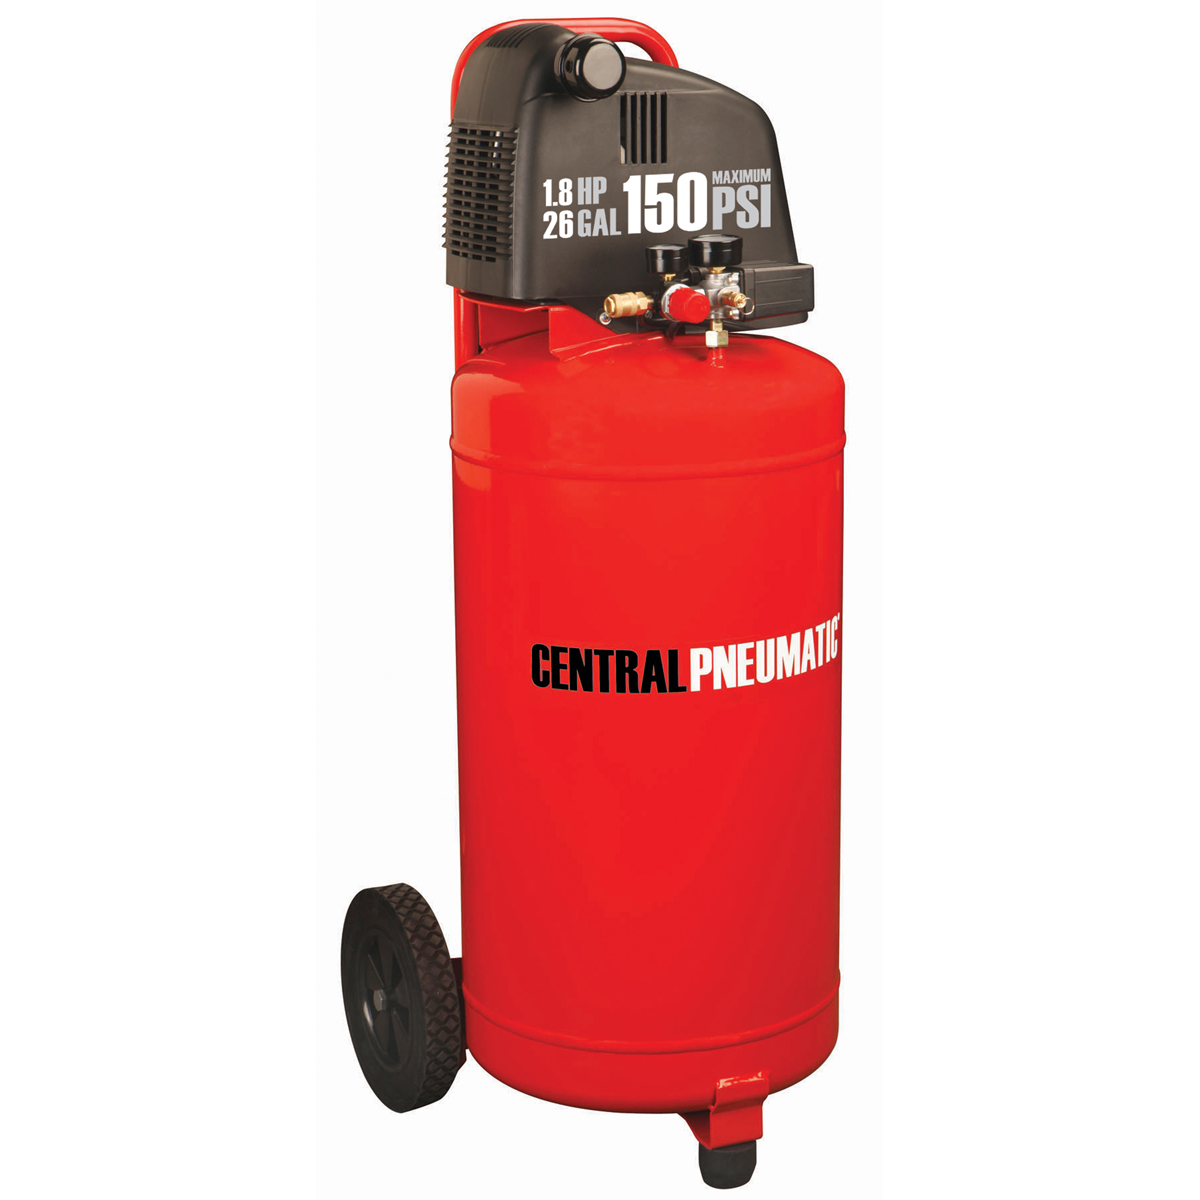 1.8 HP 150 PSI Oil-Free Air Compressor